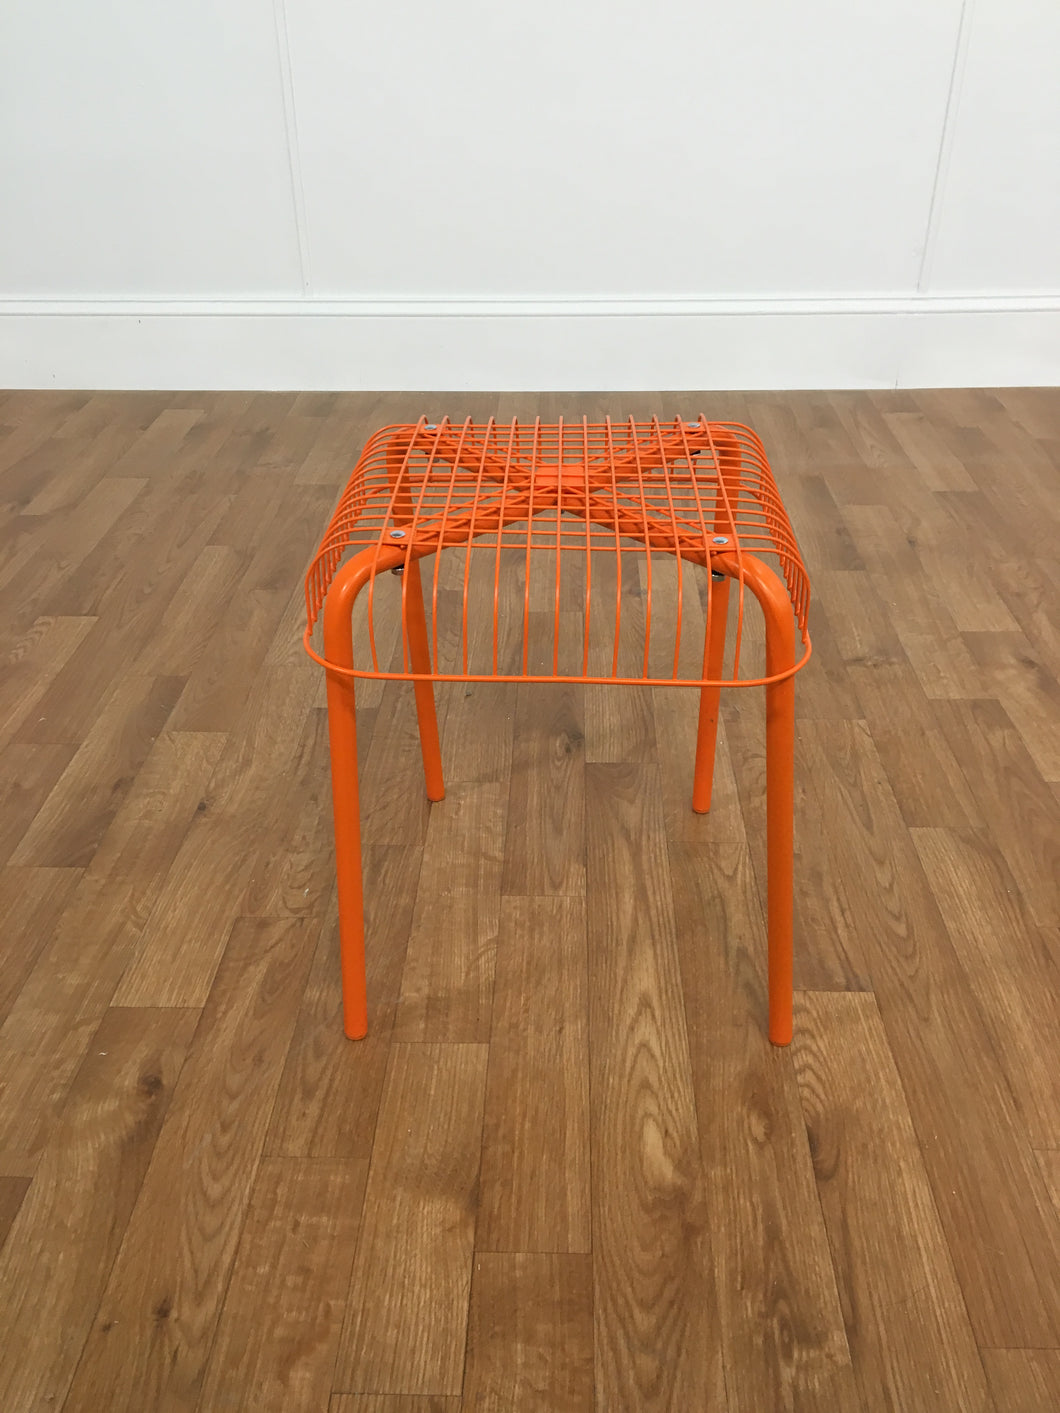 ORGANGE METAL STOOL